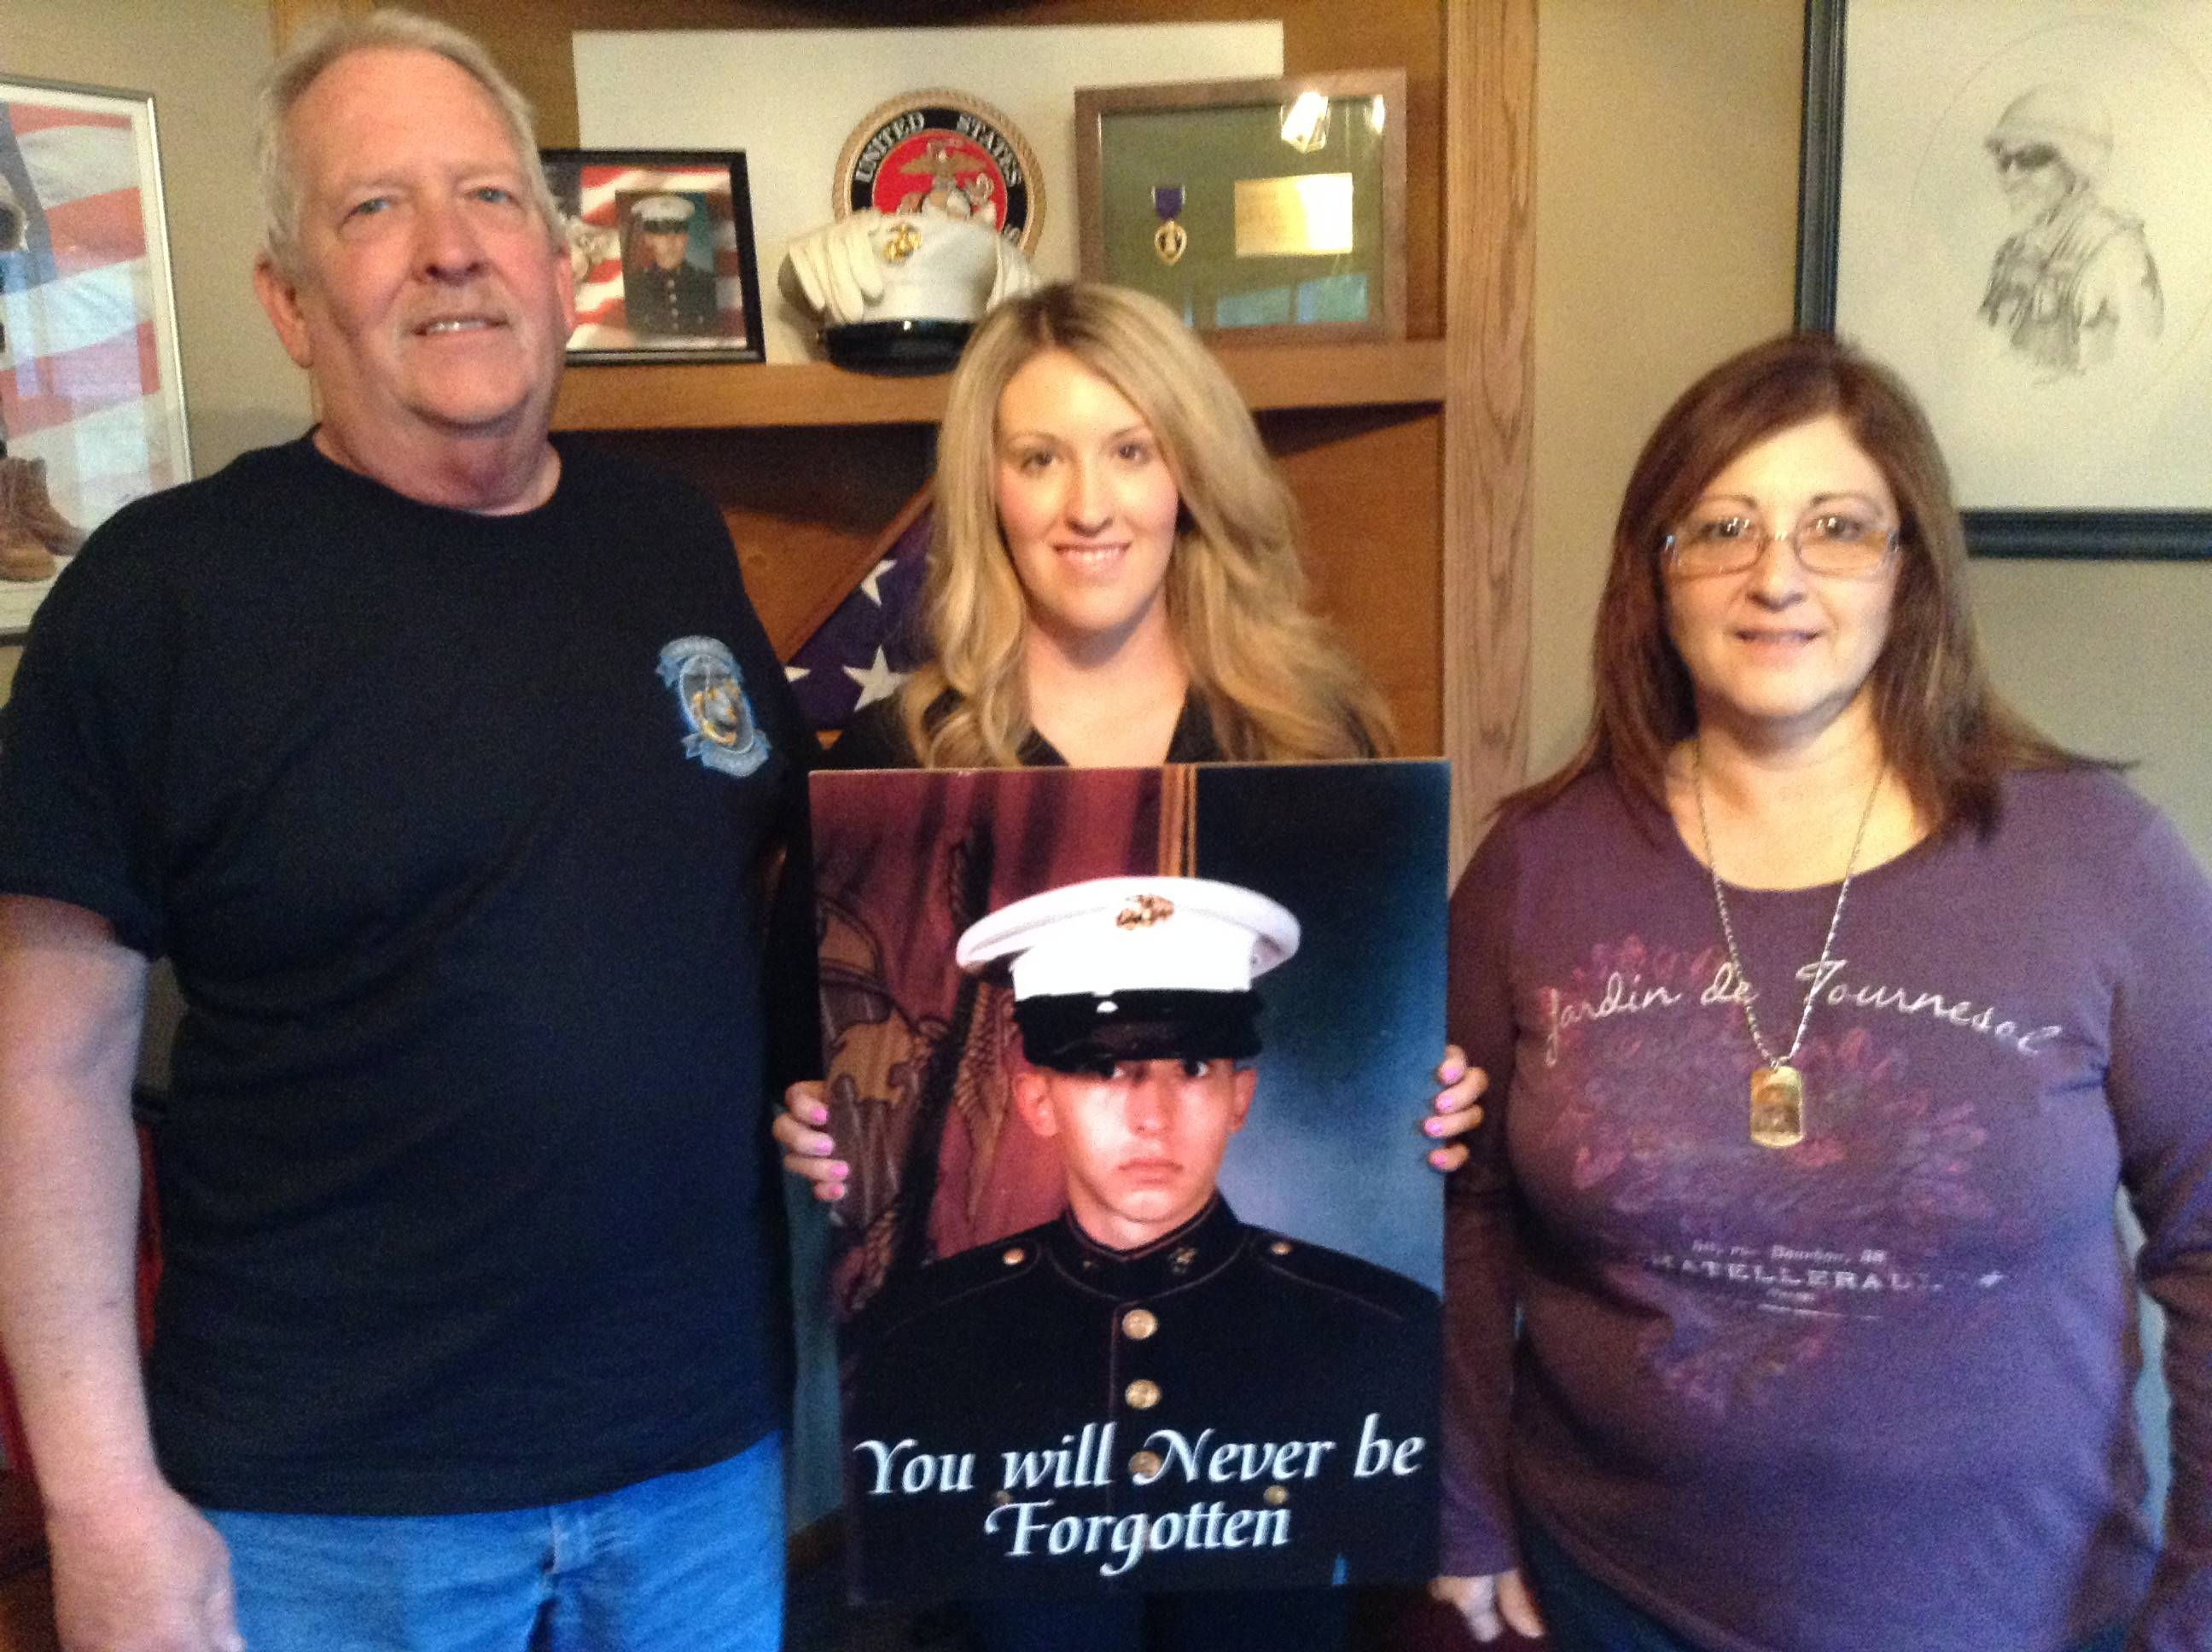 Elk Grove family keeps alive true meaning of Memorial Day